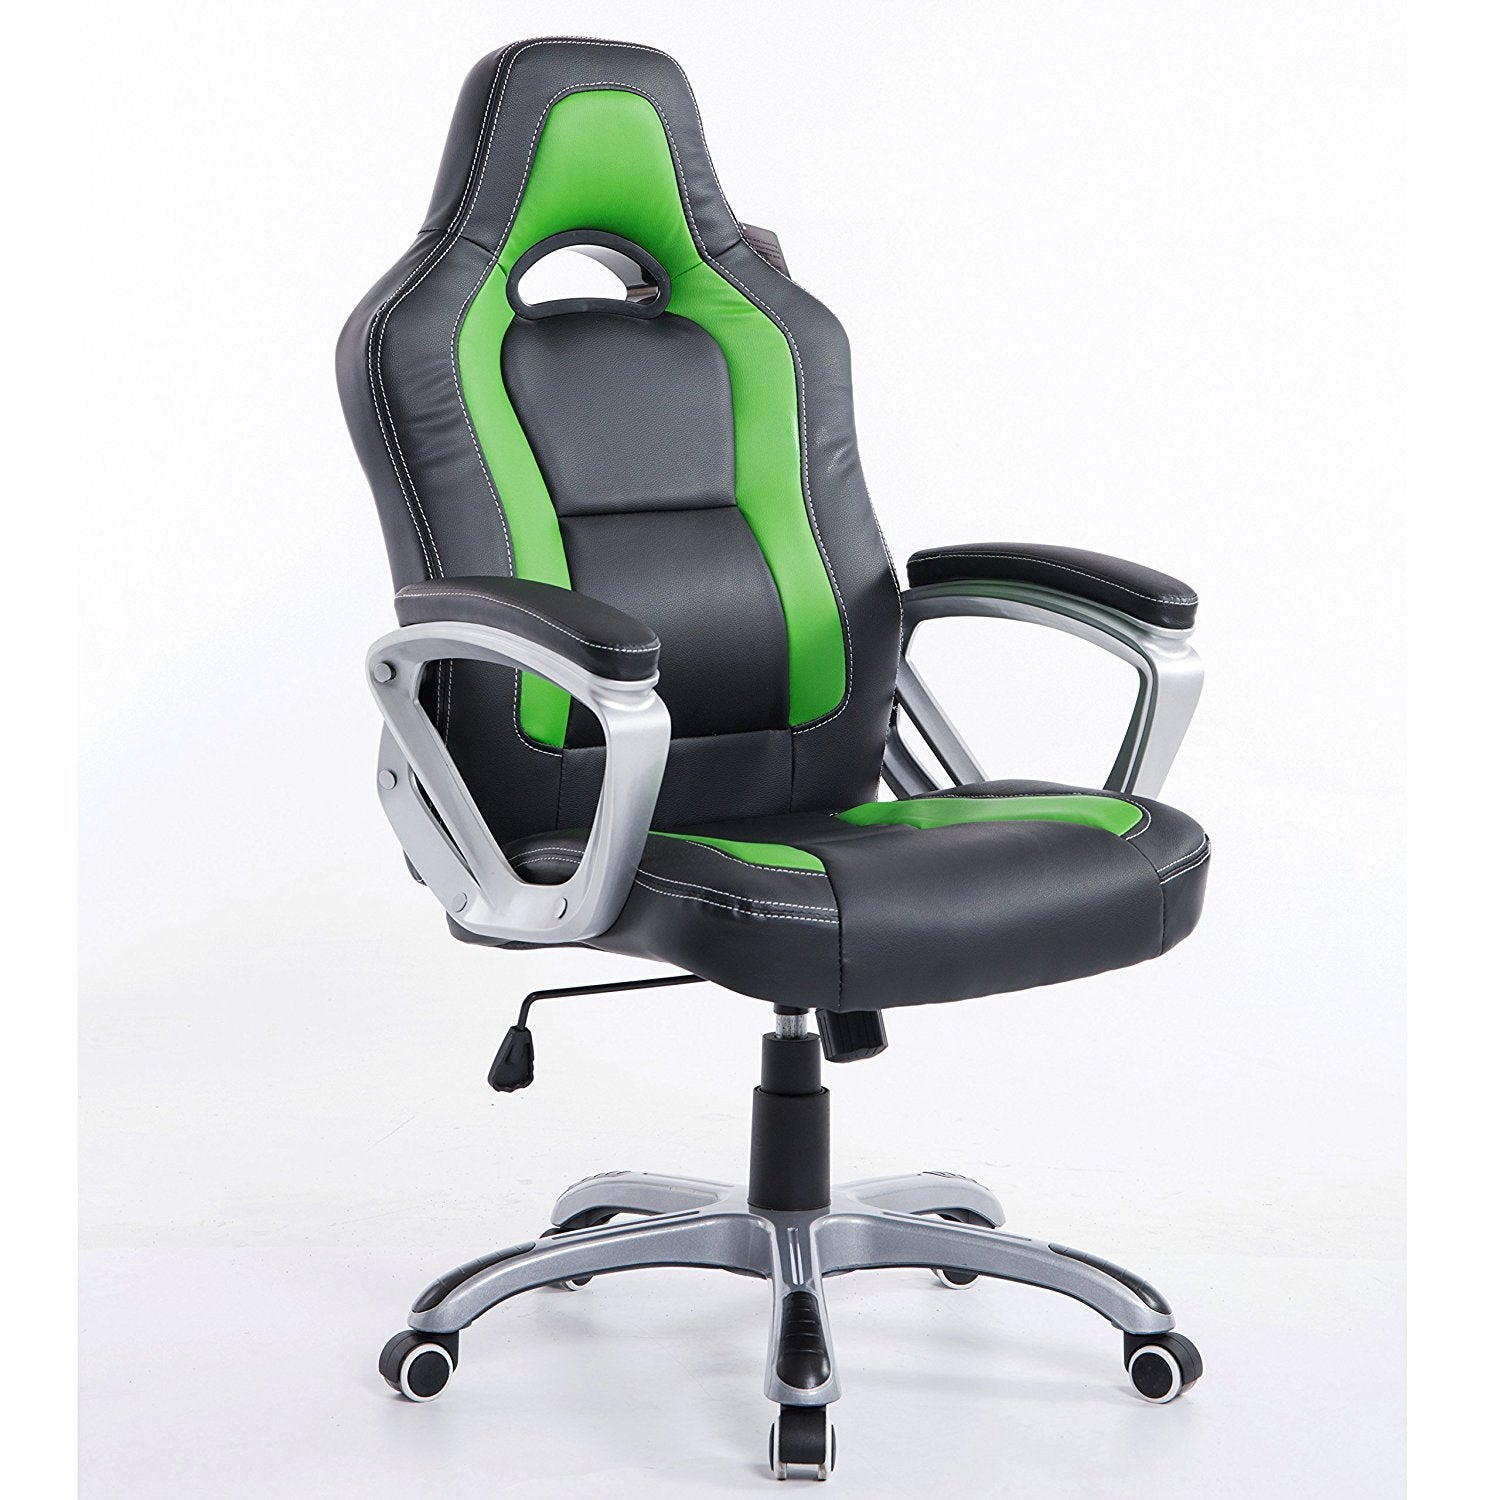 DaAls-Racing-Sport-Swivel-Office-Chair-in-Black-Green